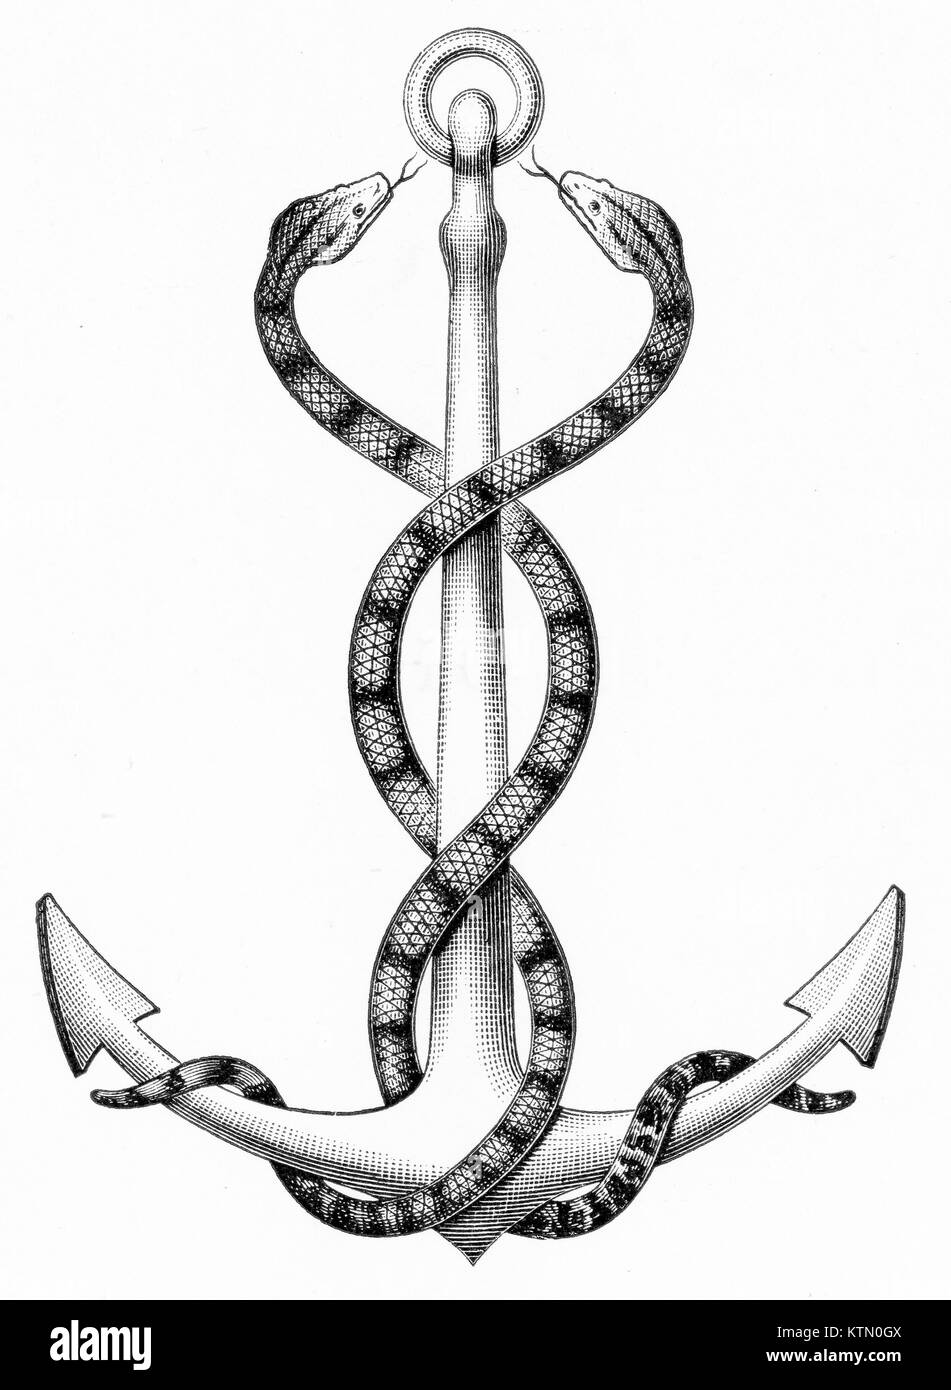 Engraving of two snakes entwined around an anchor. From an original engraving in Outlines of Zoology by Thomson, - Stock Image